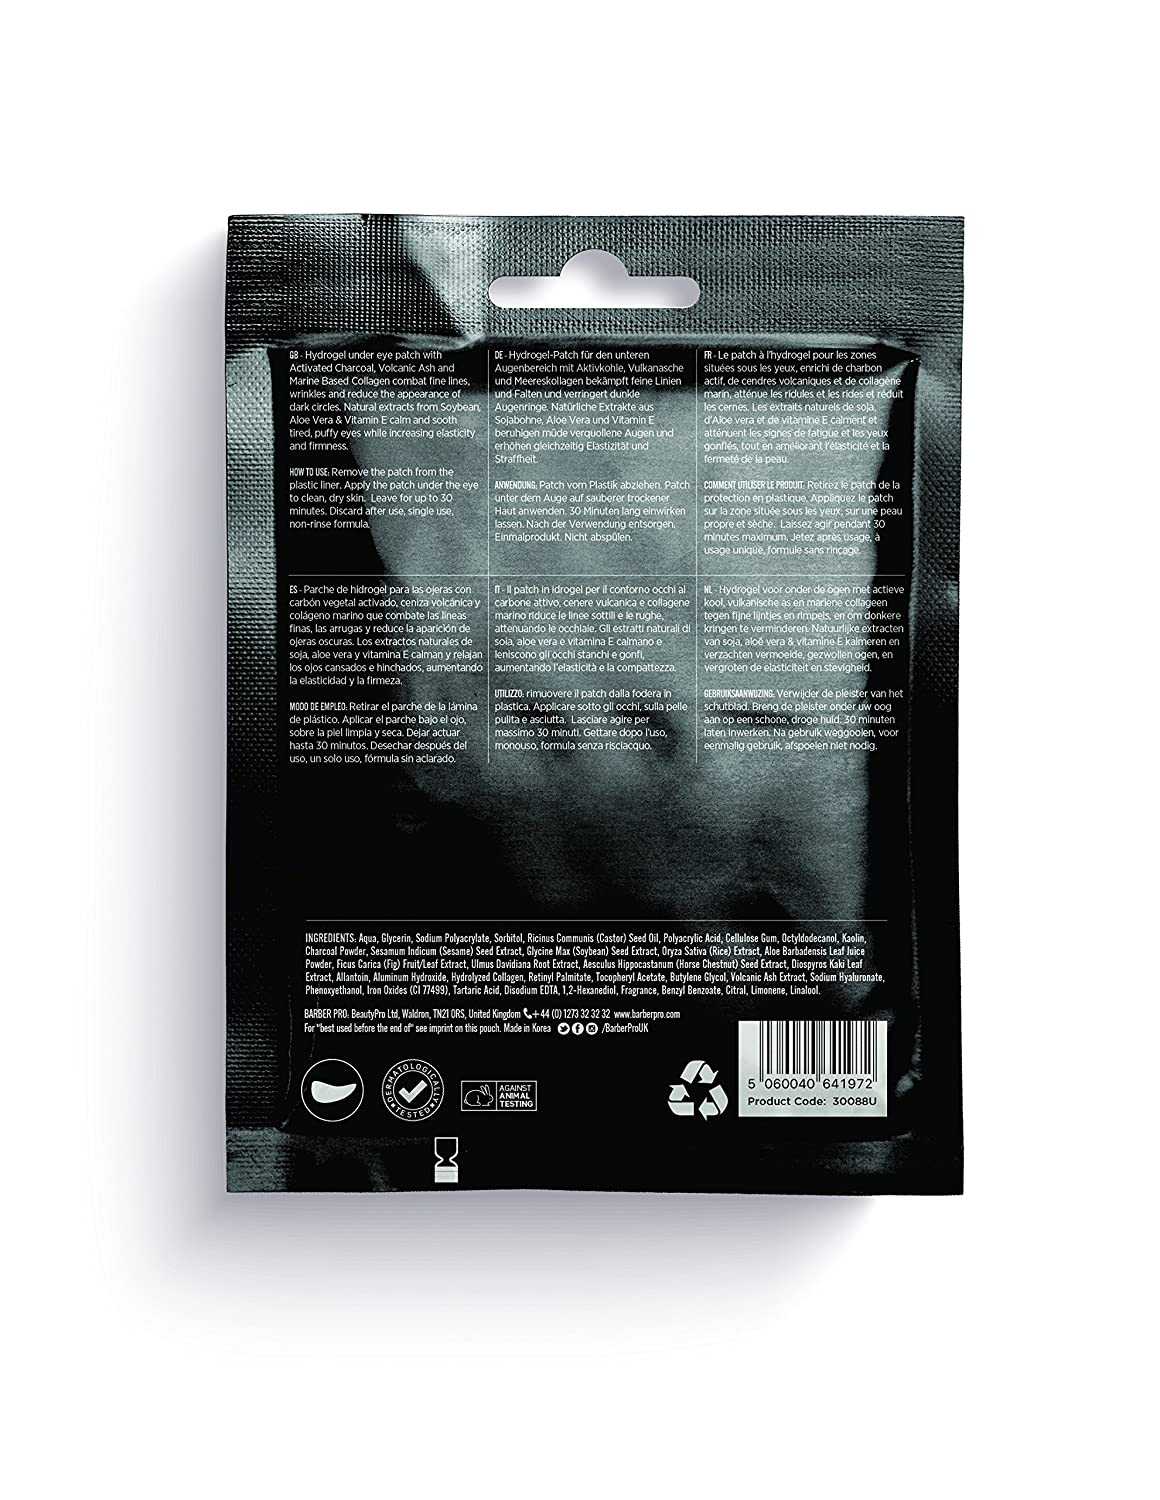 Amazon.com : BARBER PRO UNDER EYE MASK for men with activated charcoal & volcanic ash (3 Applications) : Beauty